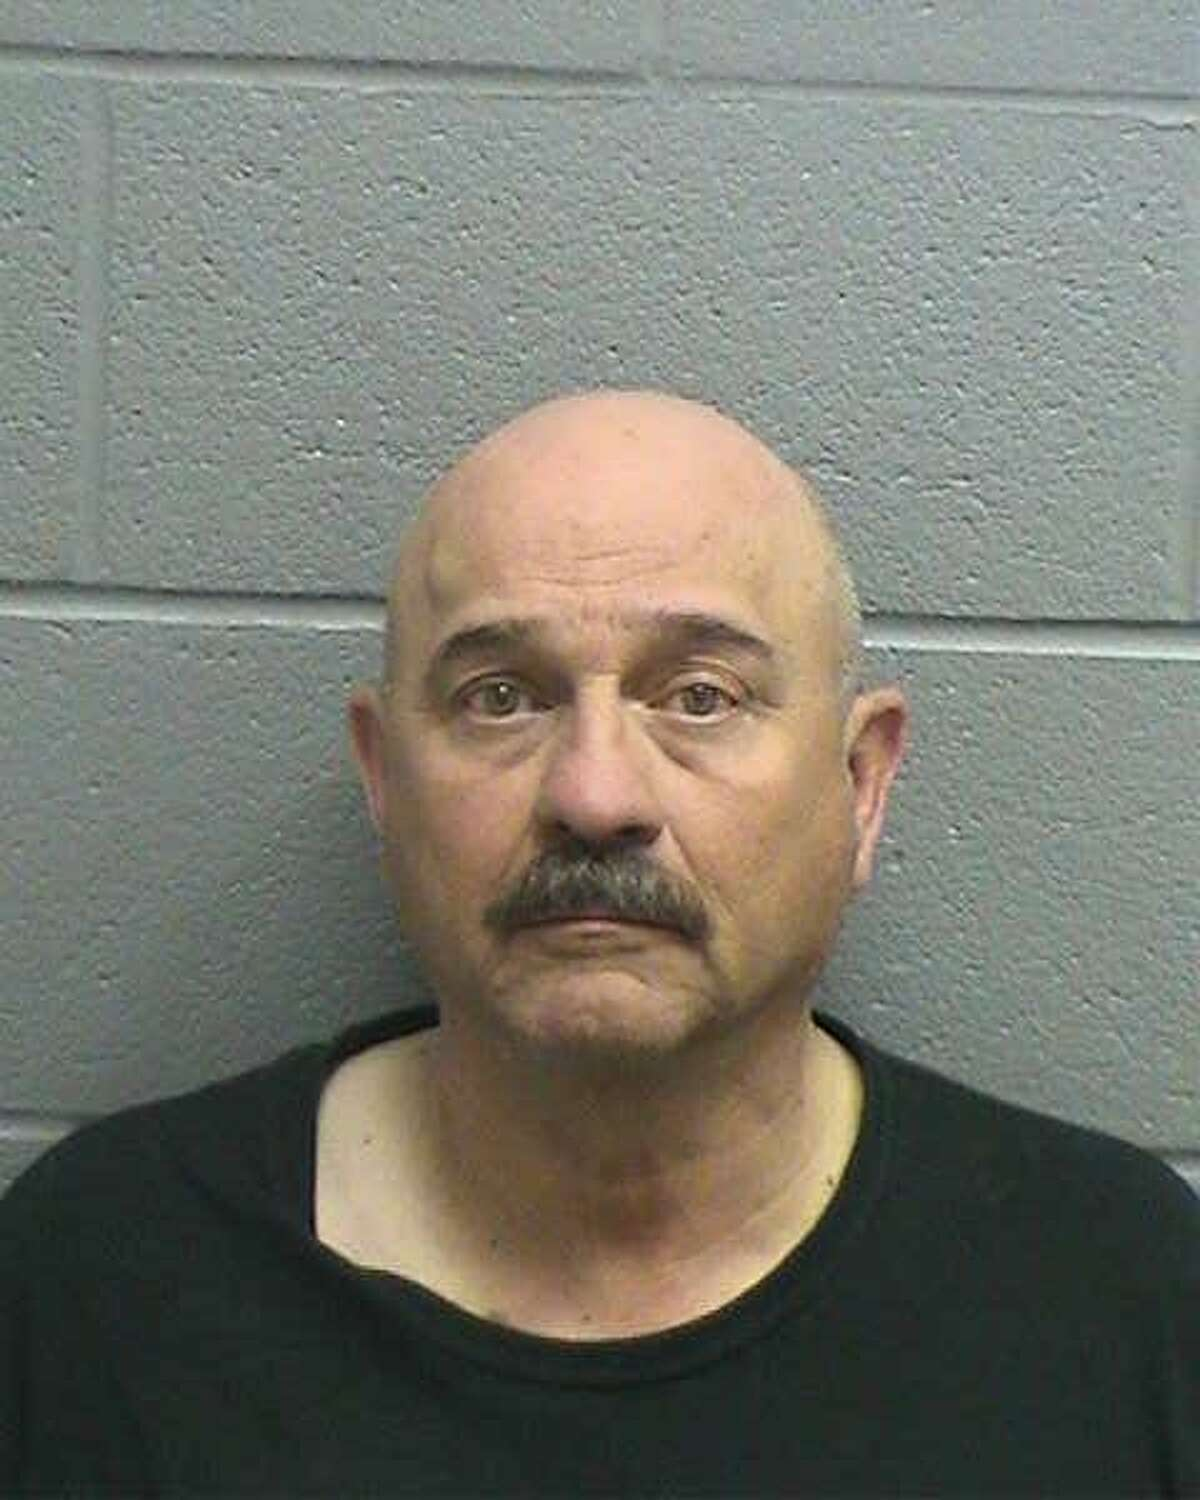 Cecil R. Gibbs, 62, of Big Spring, was charged April 21 with two second-degree felony charges of vehicular manslaughter, two state jail felony charges or criminal negligent vehicular homicide and a second-degree felony charge of aggravated assault causing serious bodily injury.While working as a mechanic at Rusty's Oilfield Service, he allegedly certified a truck as safe for the road when its brakes were defective. That vehicle was involved in a crash that killed a woman and her unborn son, and seriously injured the woman's husband, according to MRT records.If convicted, Gibbs faces a maximum sentence of 20 years in prison for each second-degree felony charge. Gibbs may face up to two years in prison for each state jail felony charge.